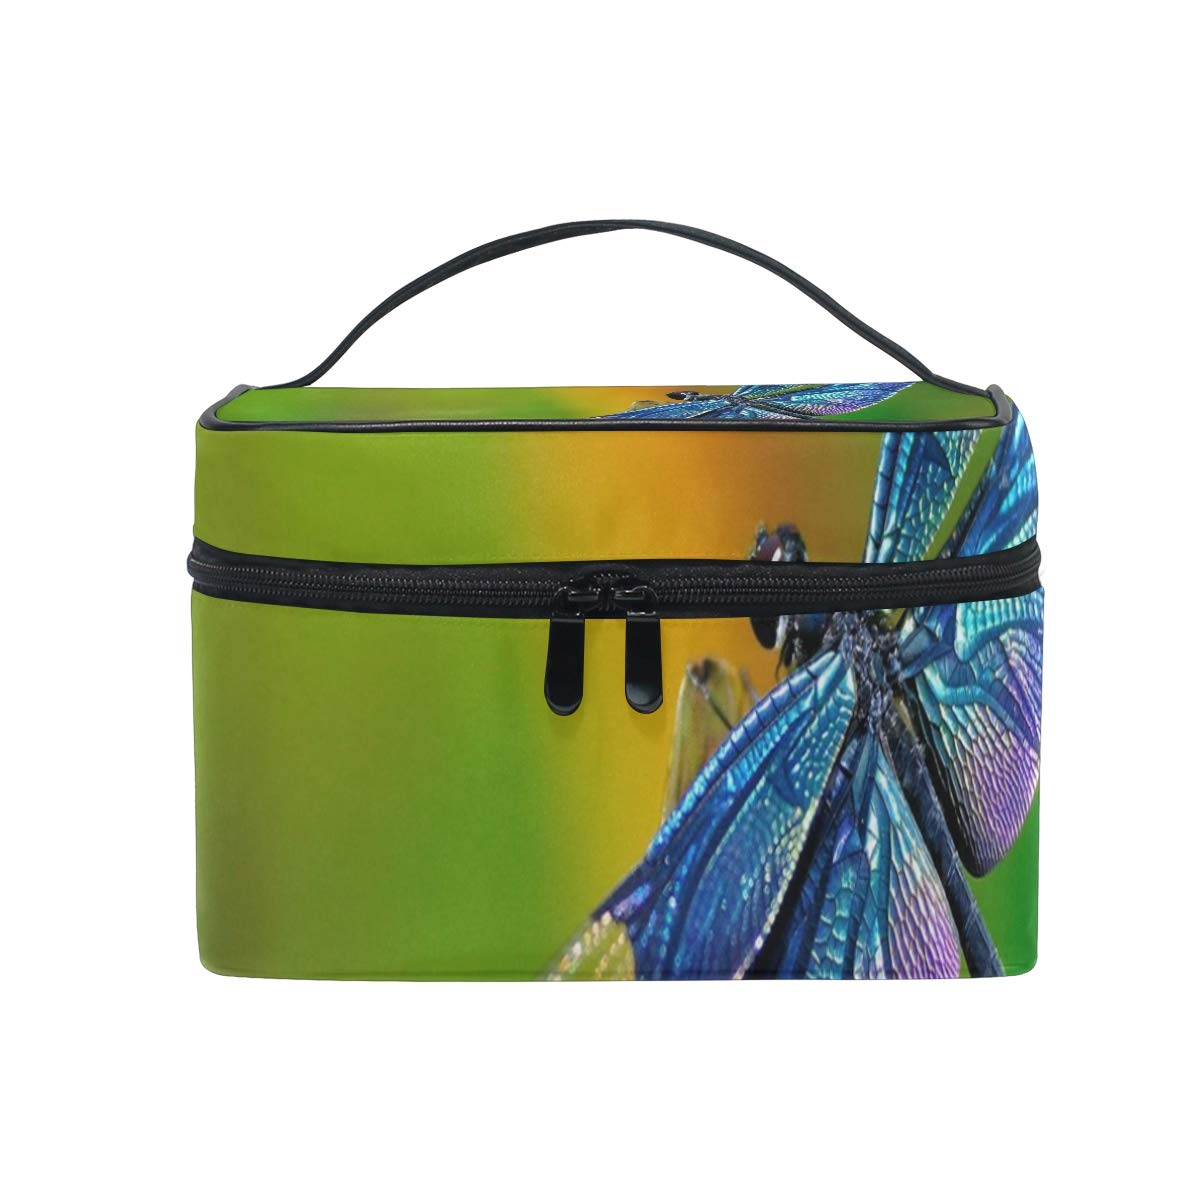 Makeup Organizer Dragonfly Wallpapers Womens Zip Toiletry Bag Large Case Cosmetic Bags